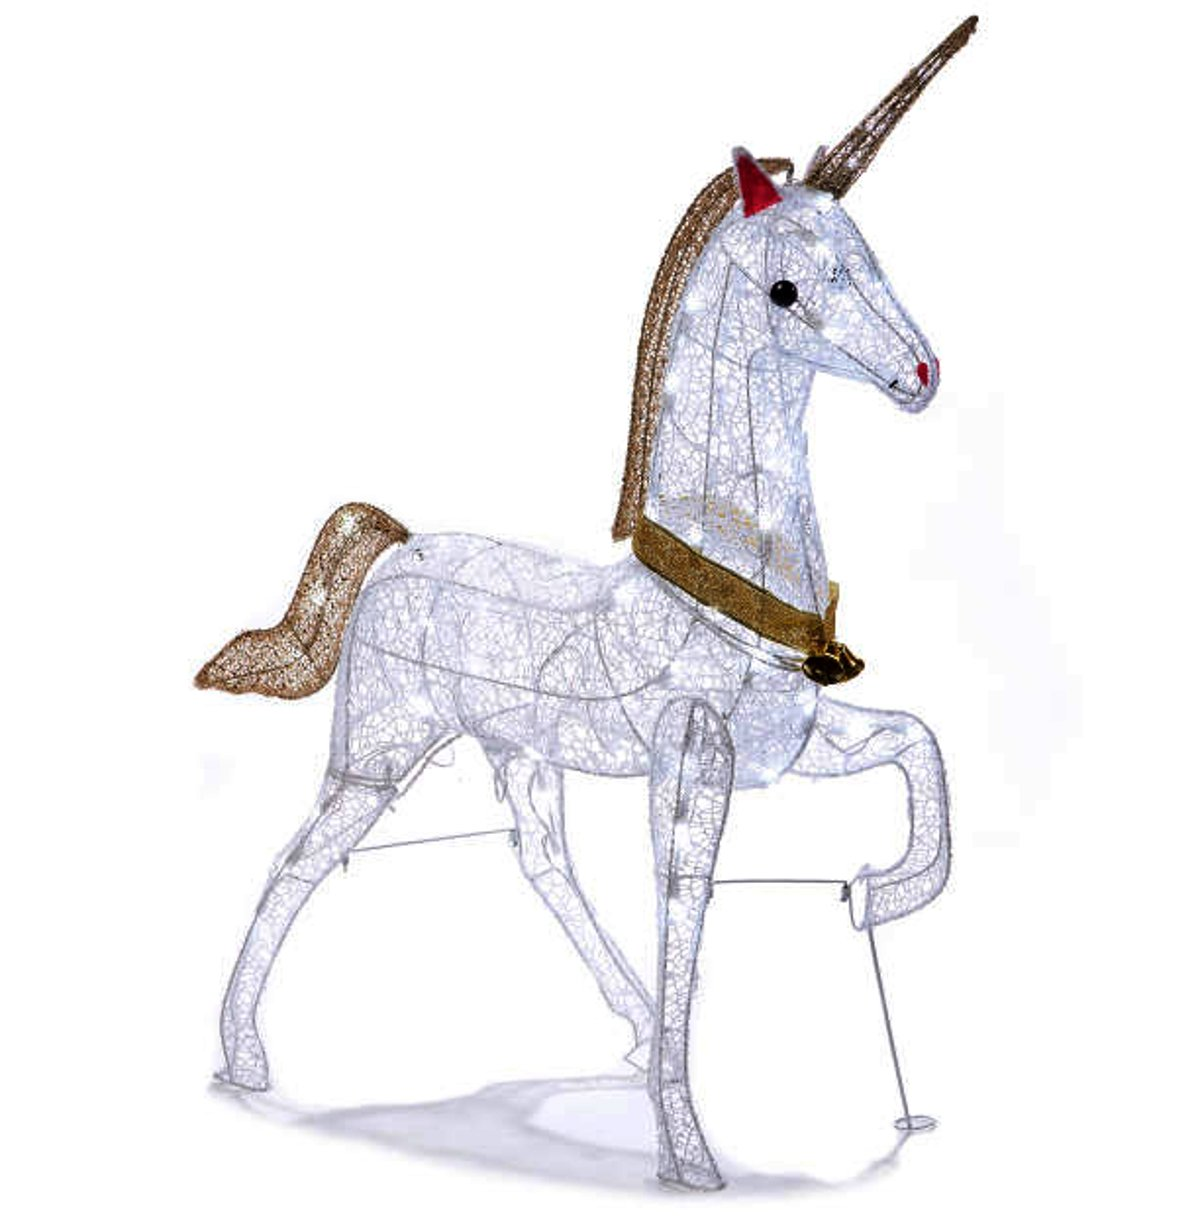 Christmas Glitter Unicorn Lighted Yard Art Decoration Indoor / Outdoor 40 Inch by Winter Wonder Lane